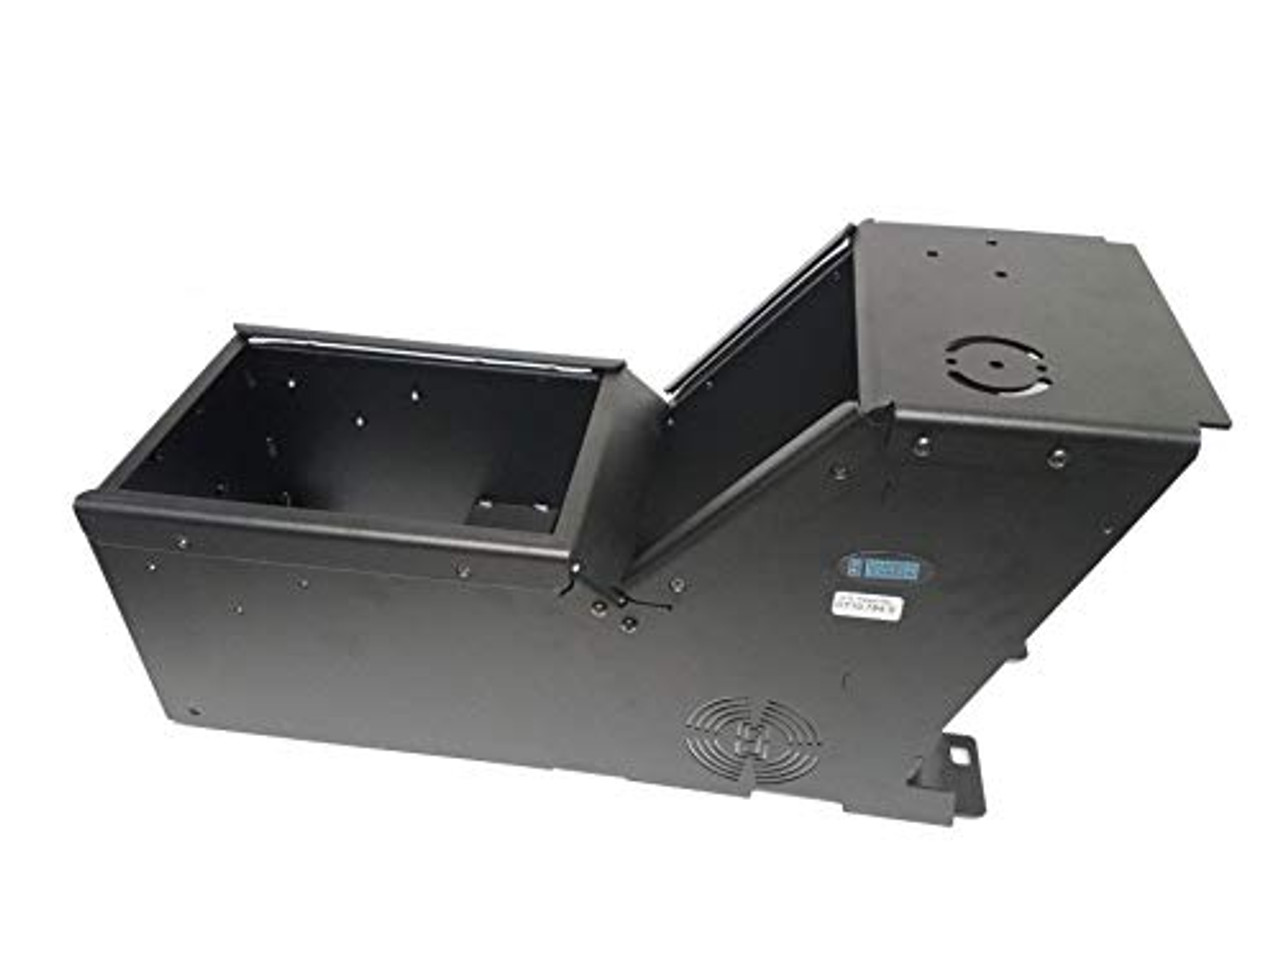 2012-2014 Console Box -Ford - Utility PI. Includes 3 faceplates and 3 Filler Panels. | 0309X8X240M